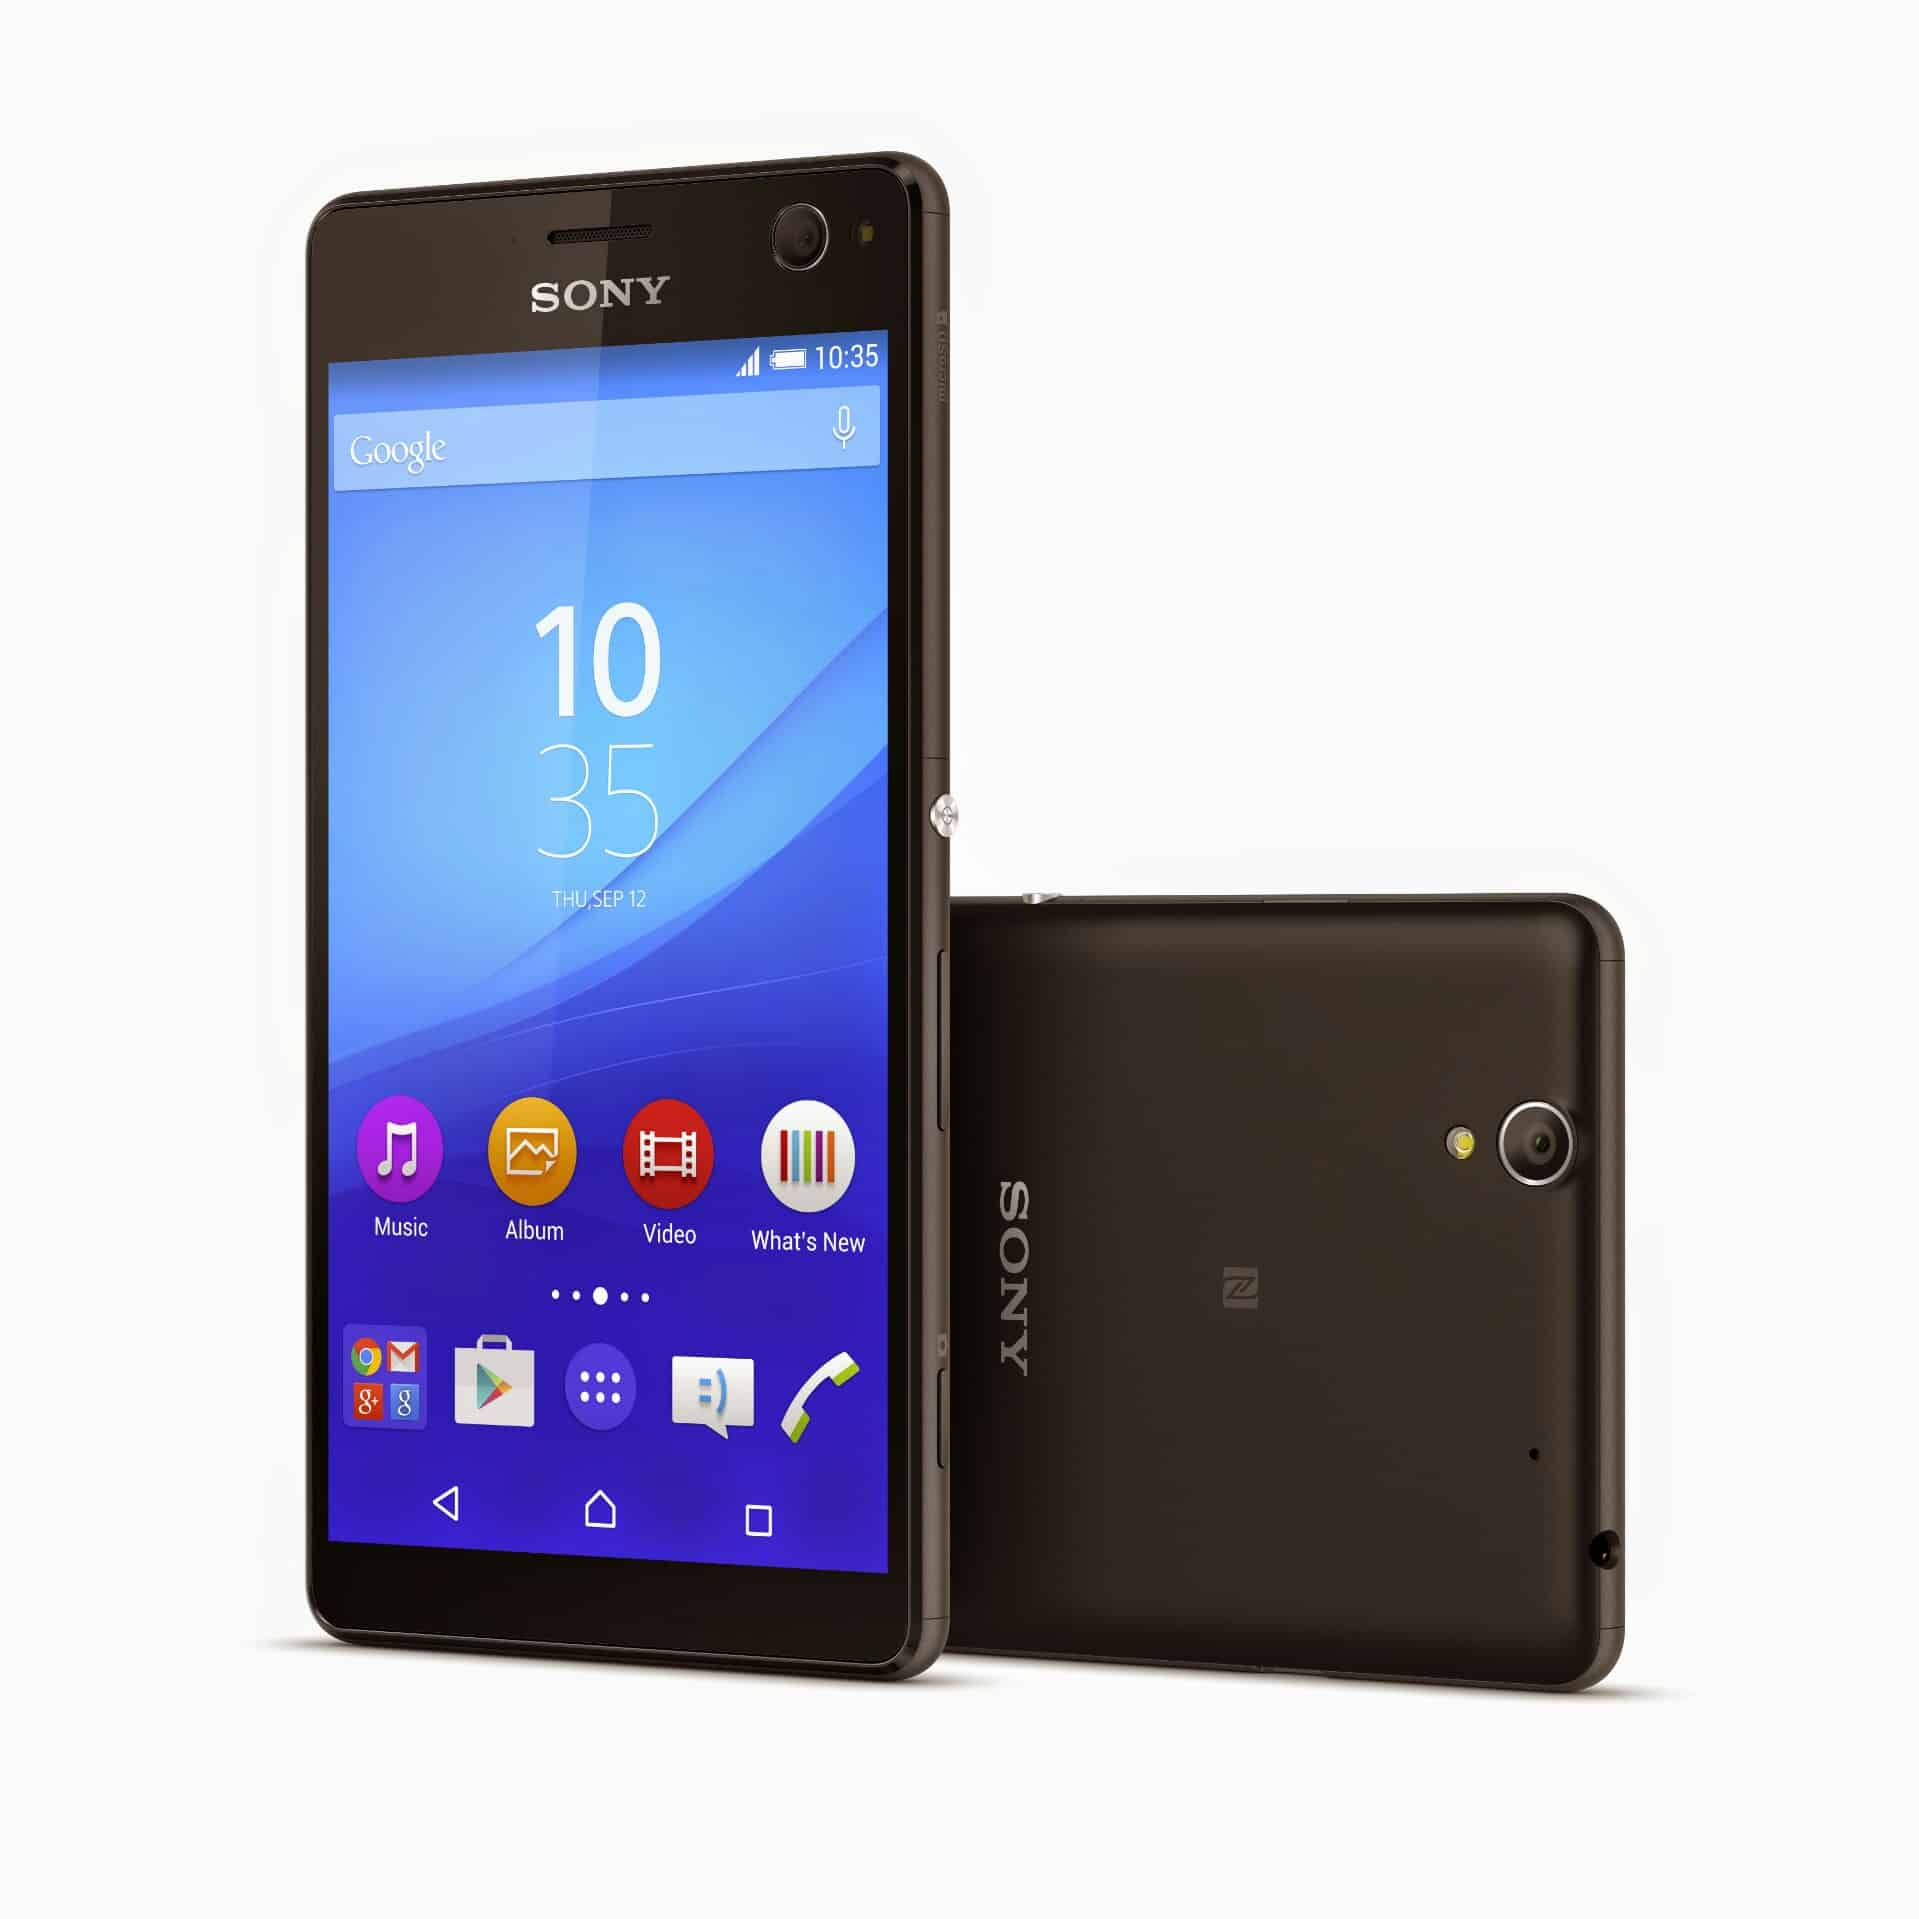 Sony Xperia C4 press images 6